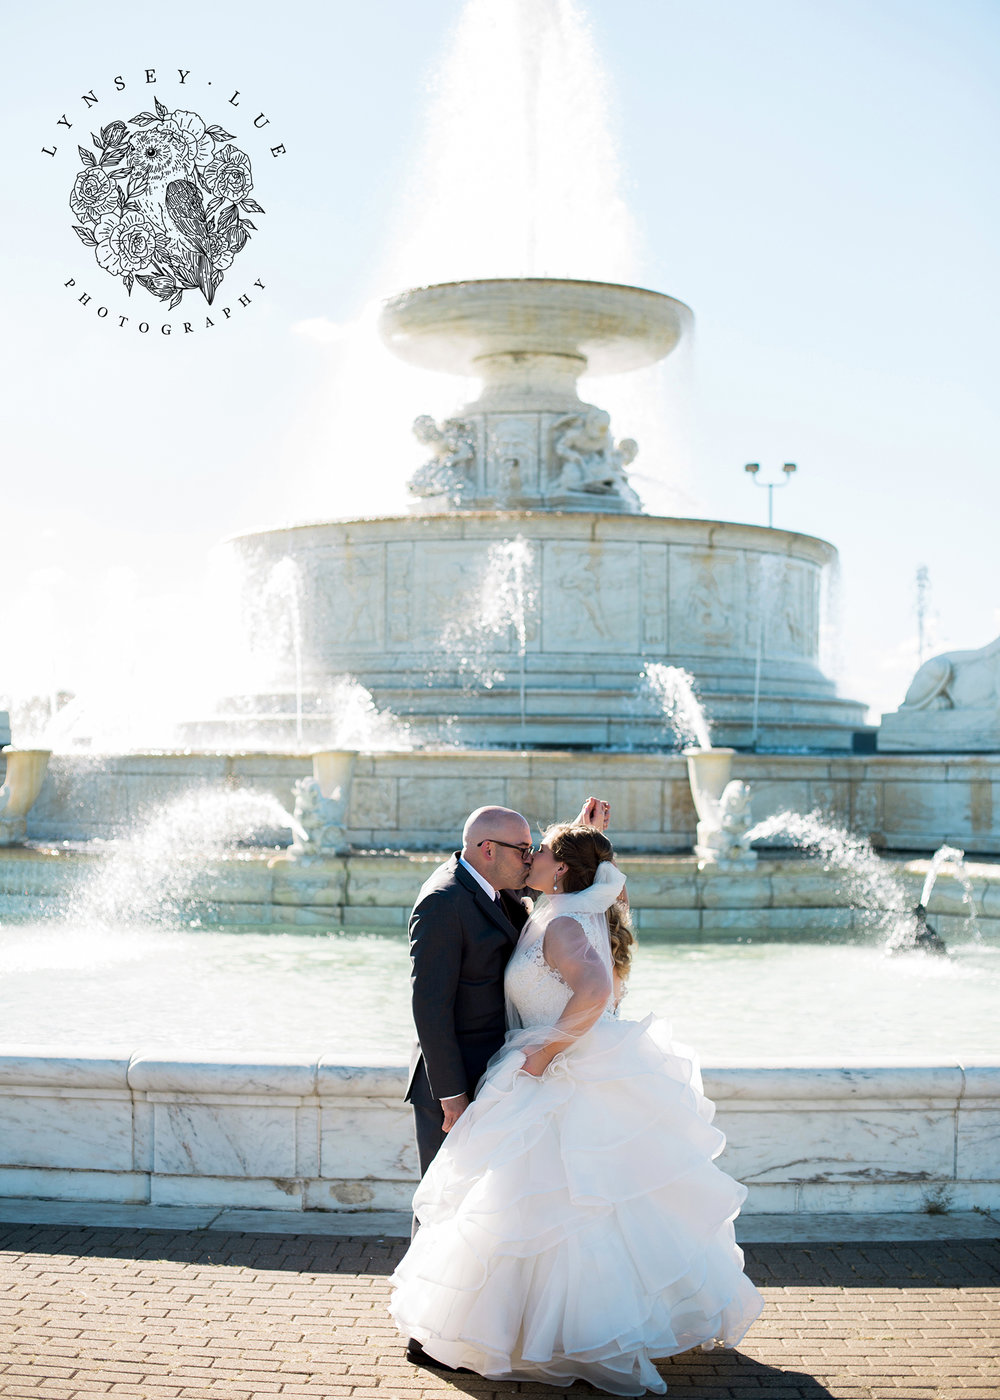 midwestwedding photography.jpg